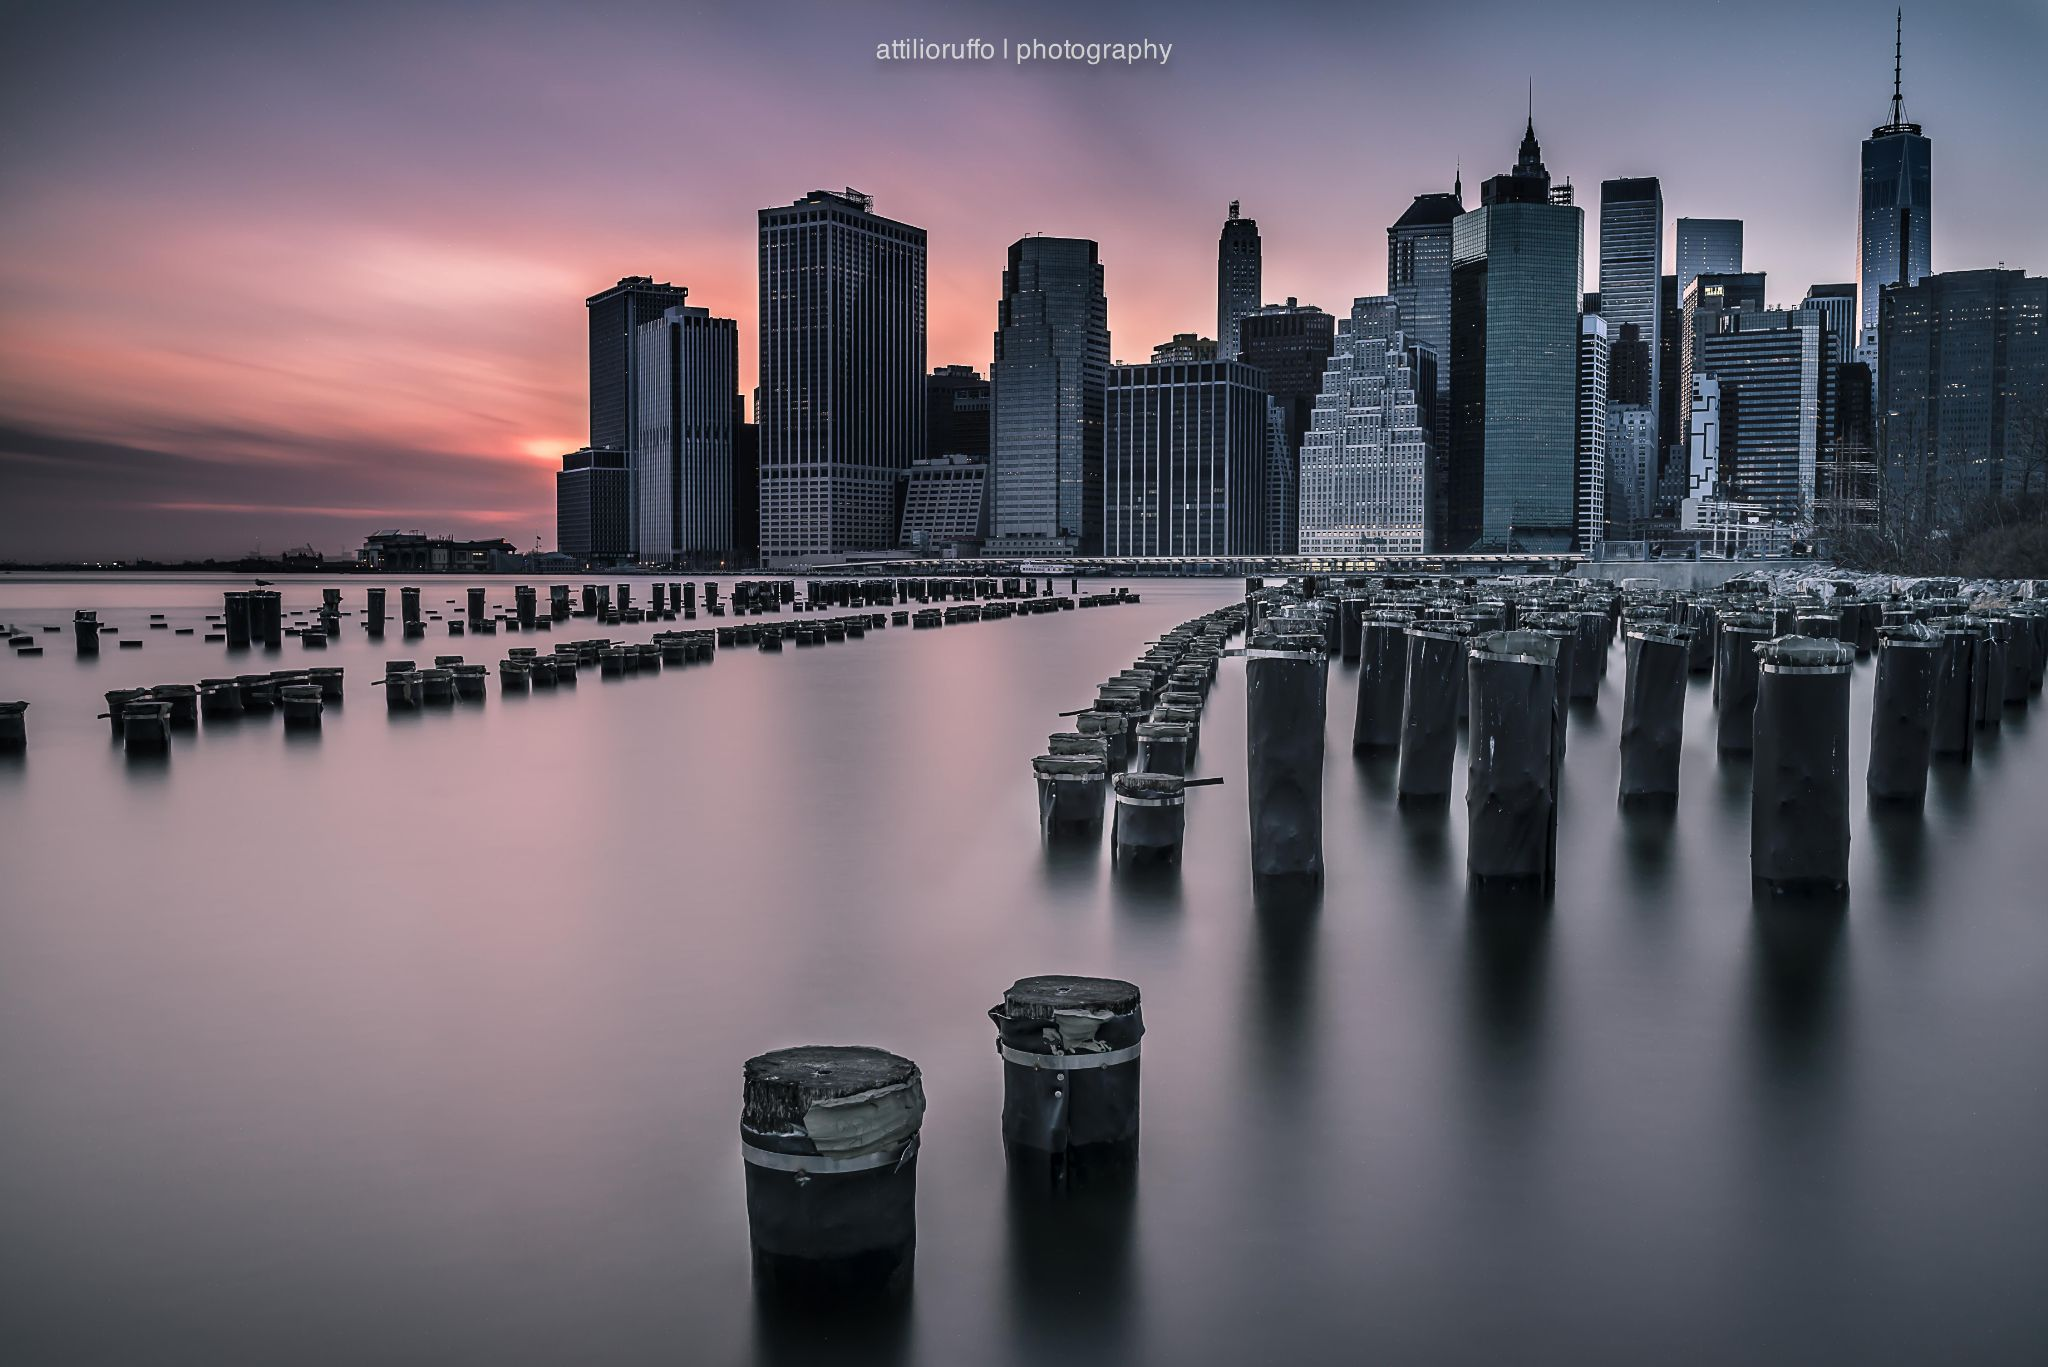 City of Steel by Attilio Ruffo Photography